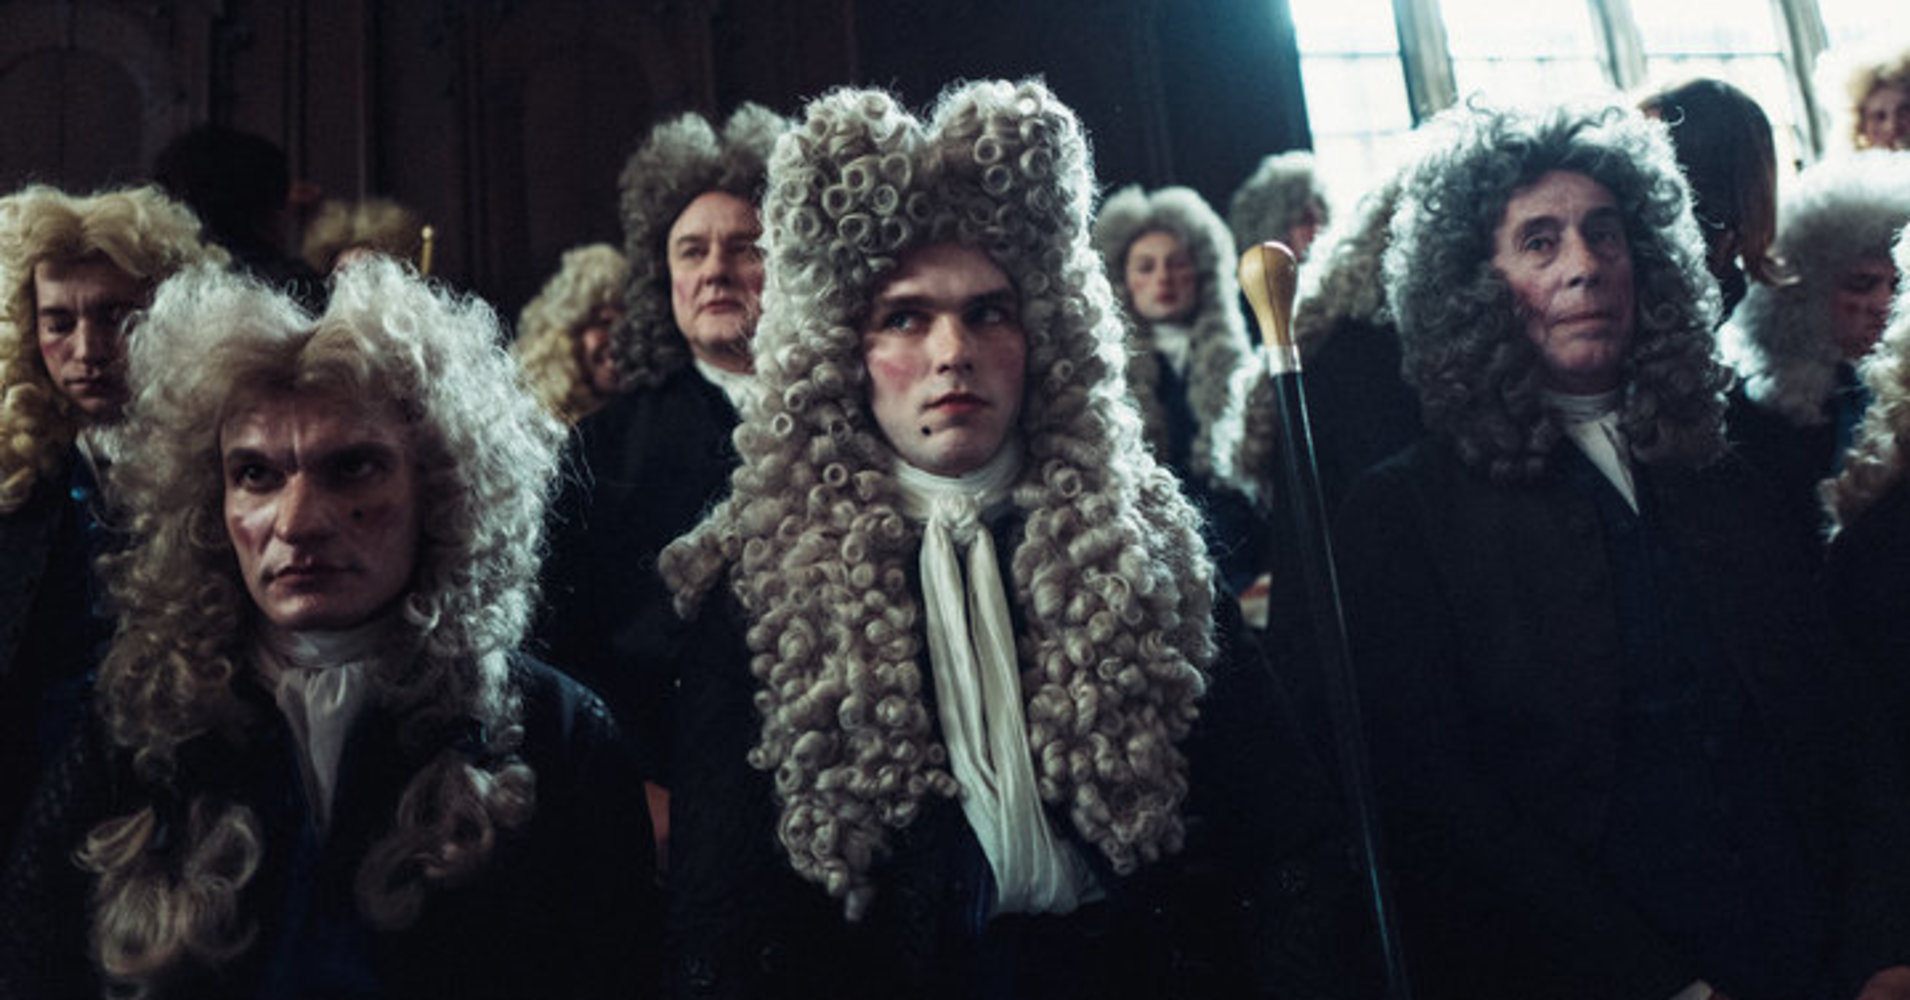 Go See 'The Favourite,' You Corny-Faced Blunderbuss